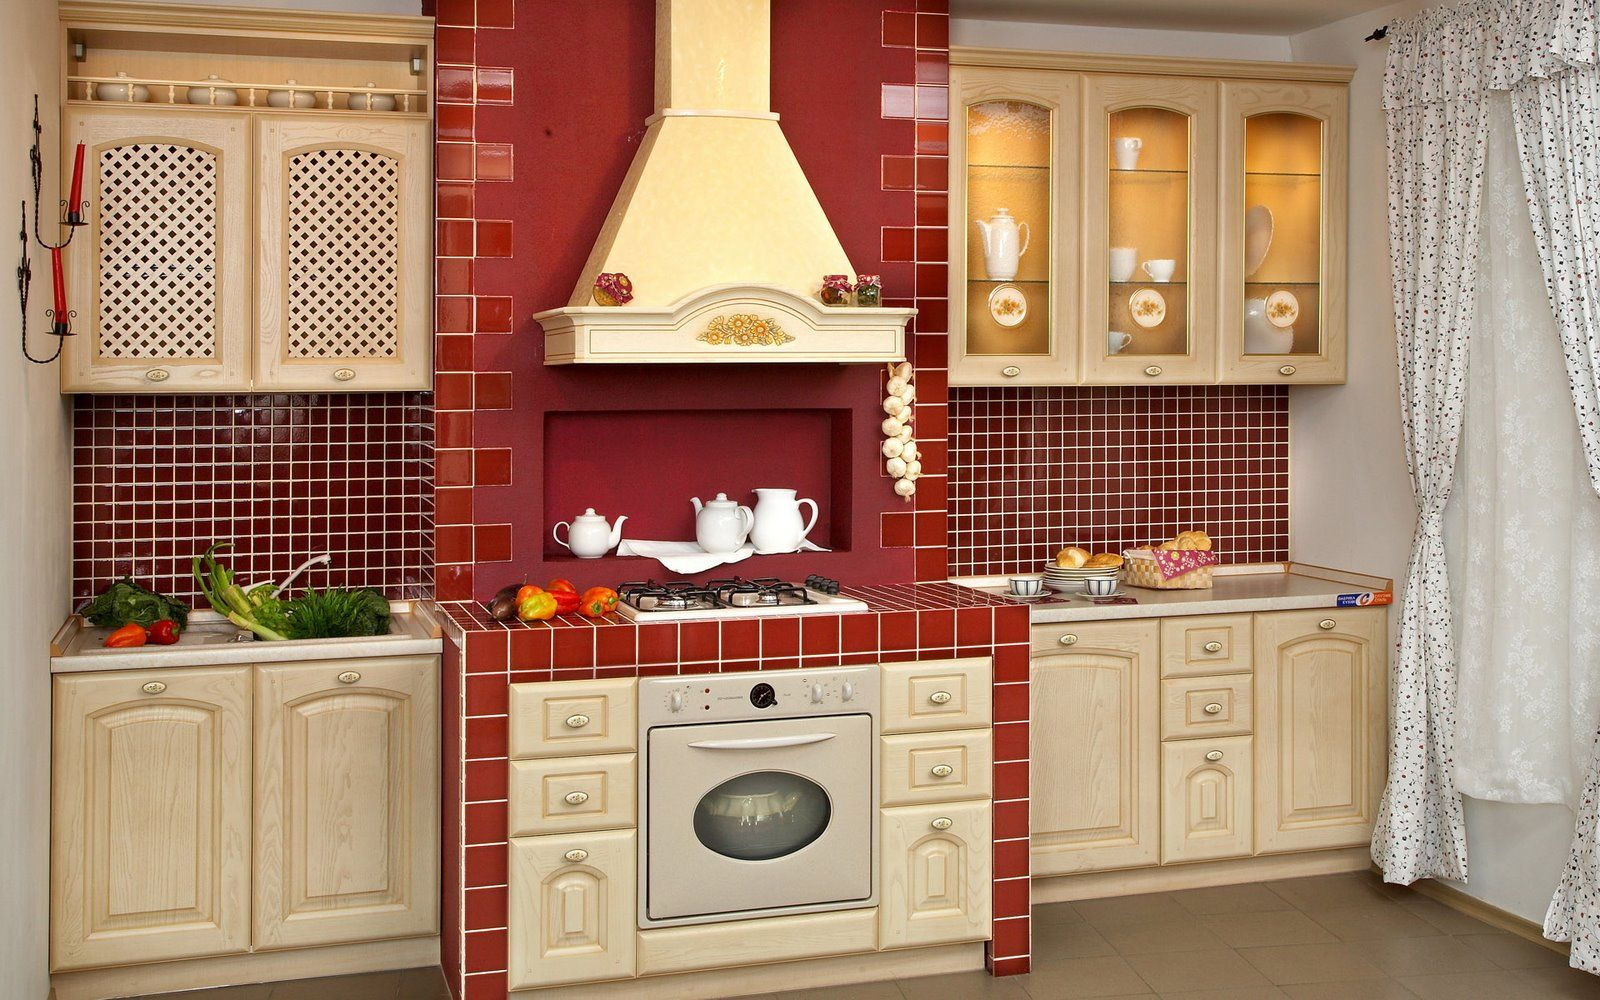 Kitchen Designs For Small Kitchens  This Kitchen Has Been Adorable Kitchen Cupboards Designs Pictures Inspiration